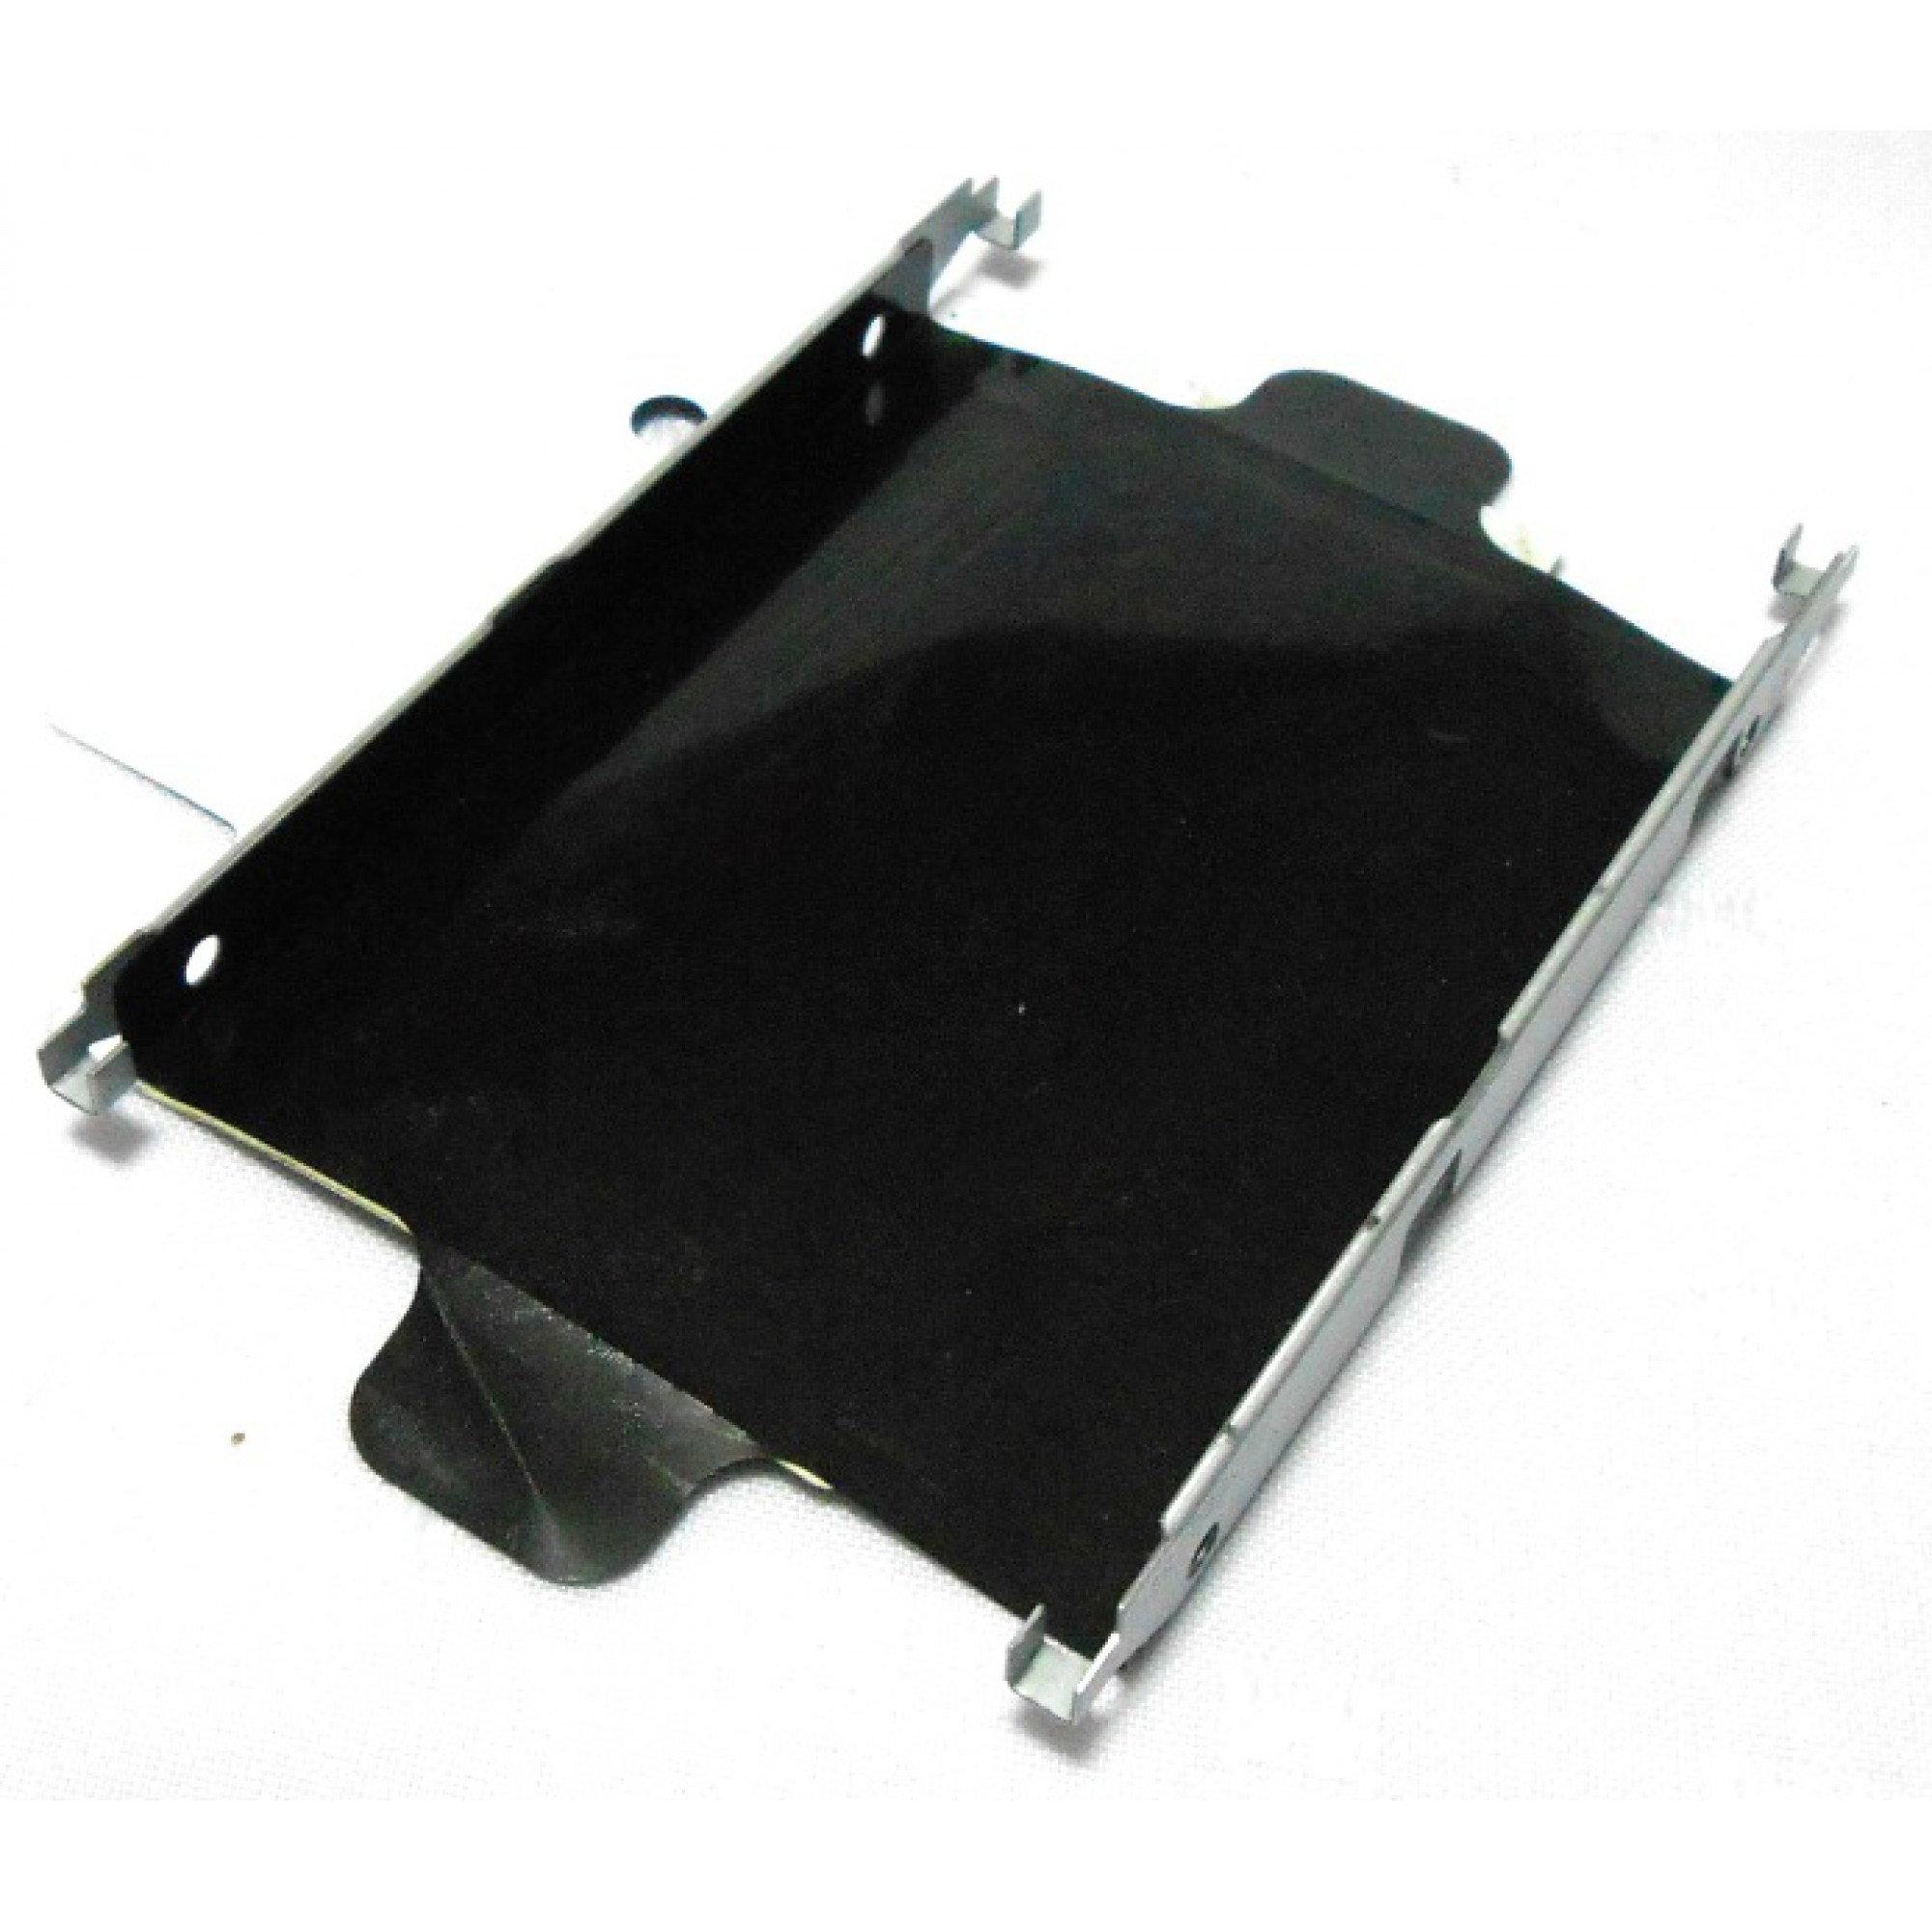 Caddy para disco duro Hp mini 210-1000 IPP9